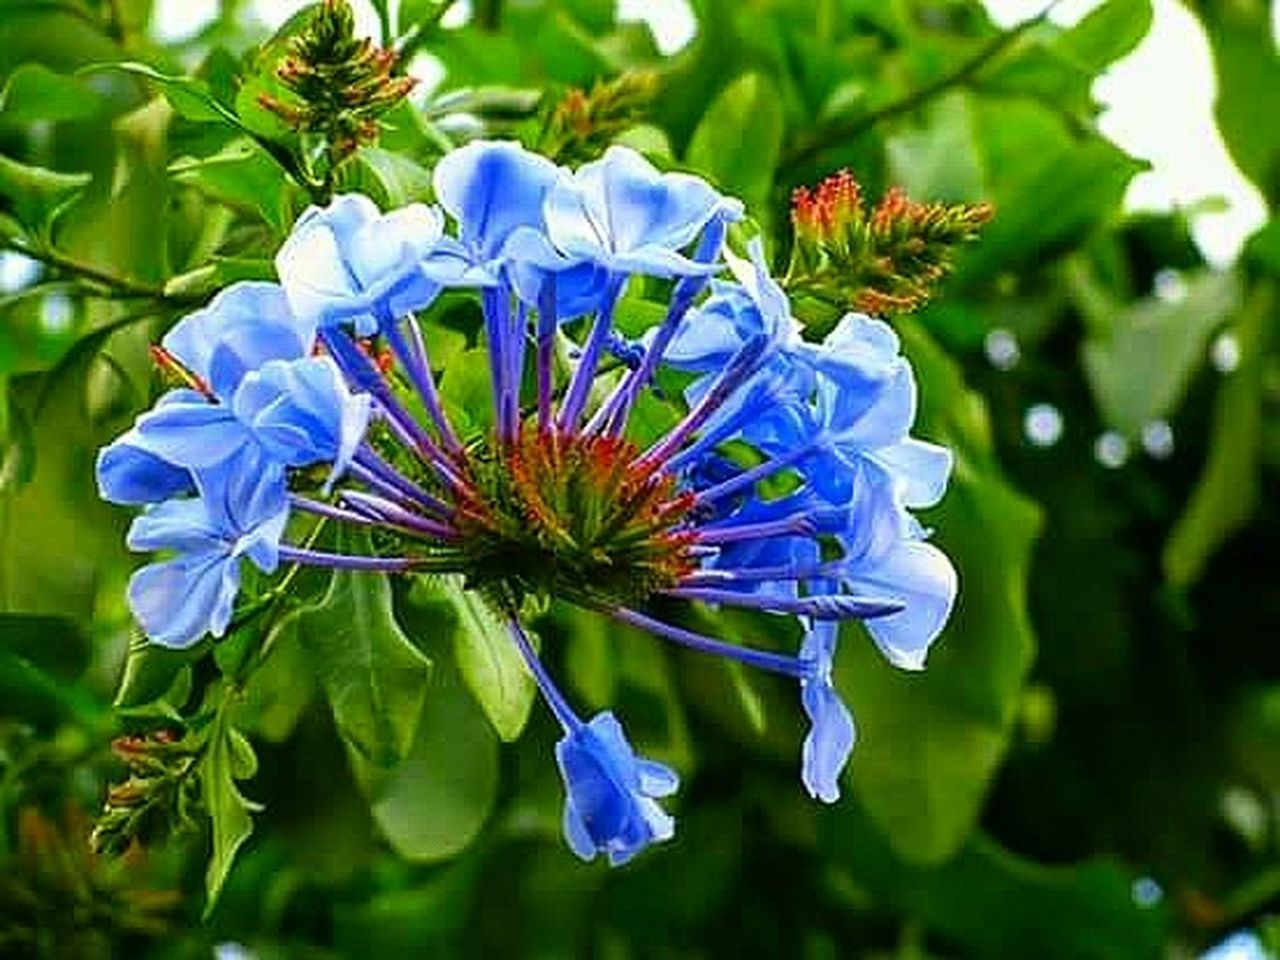 flower, petal, fragility, flower head, beauty in nature, nature, growth, blossom, plant, botany, freshness, blue, purple, springtime, close-up, outdoors, no people, stamen, day, leaf, botanical garden, multi colored